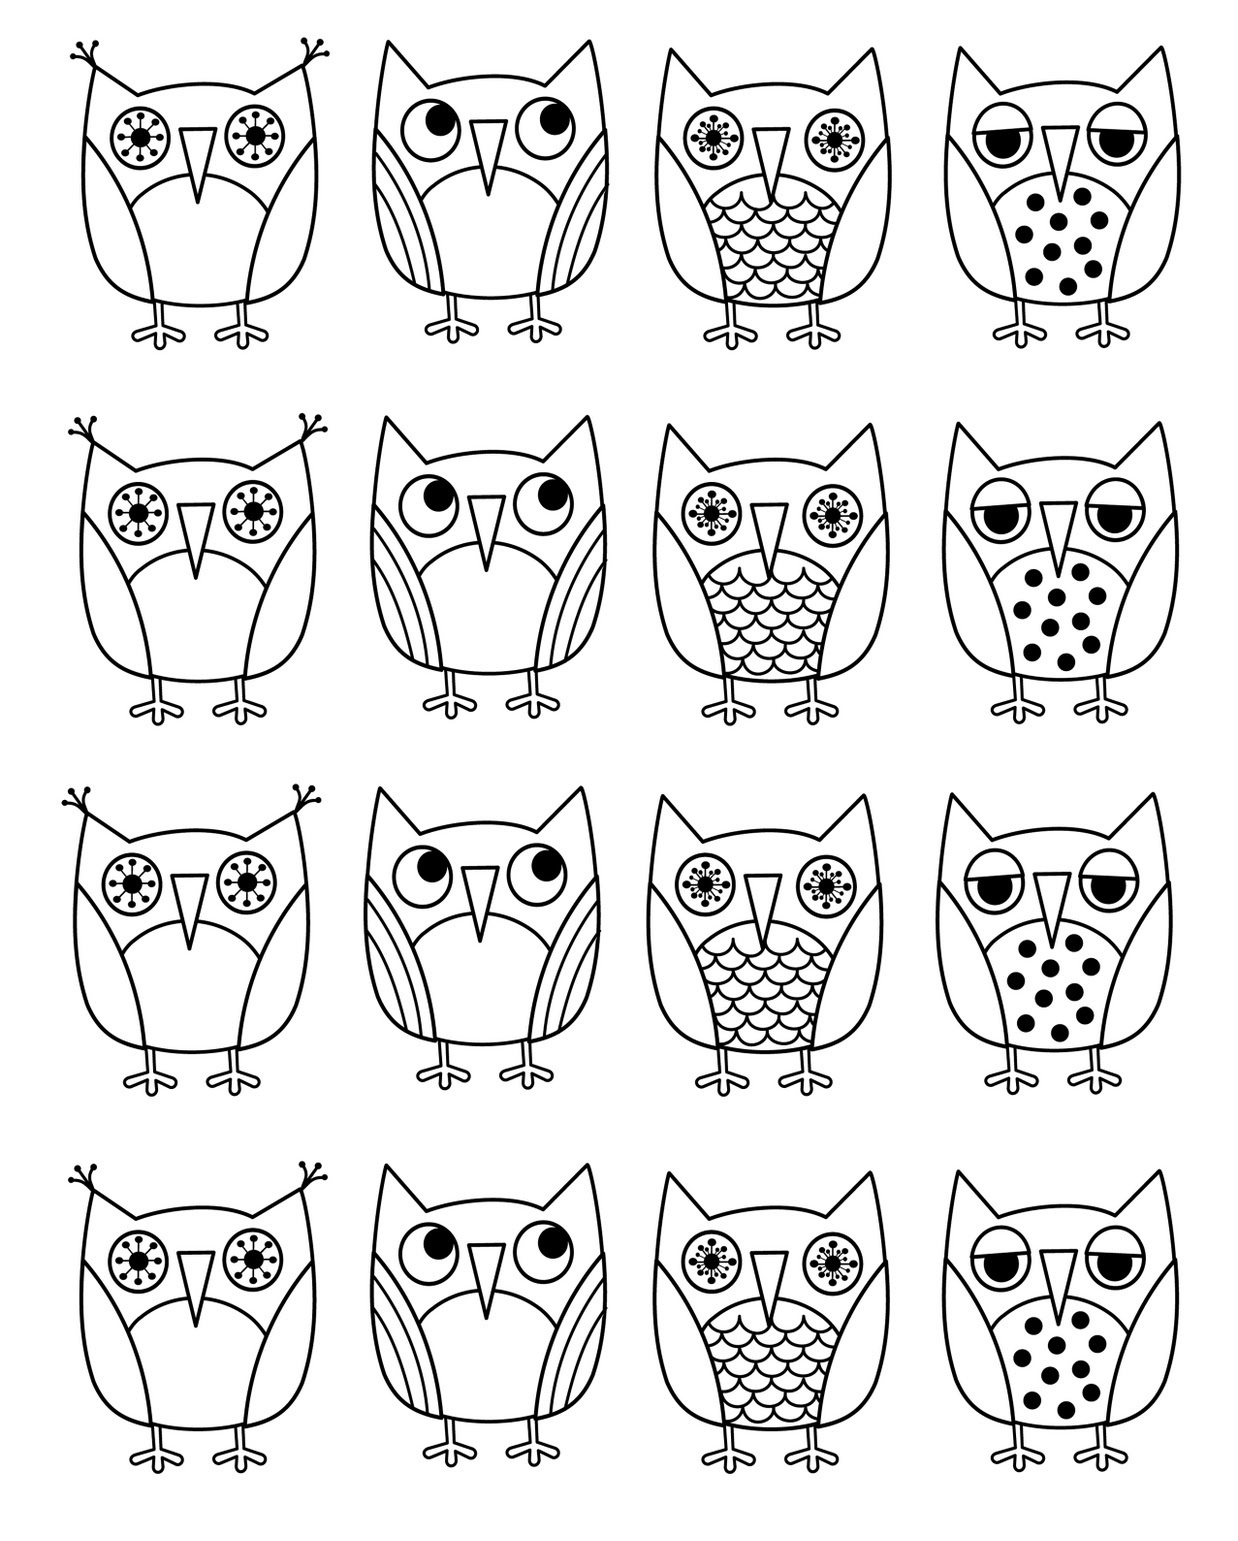 Free Printable Owl Coloring Pages For Kids - Free Printable Owl Coloring Sheets